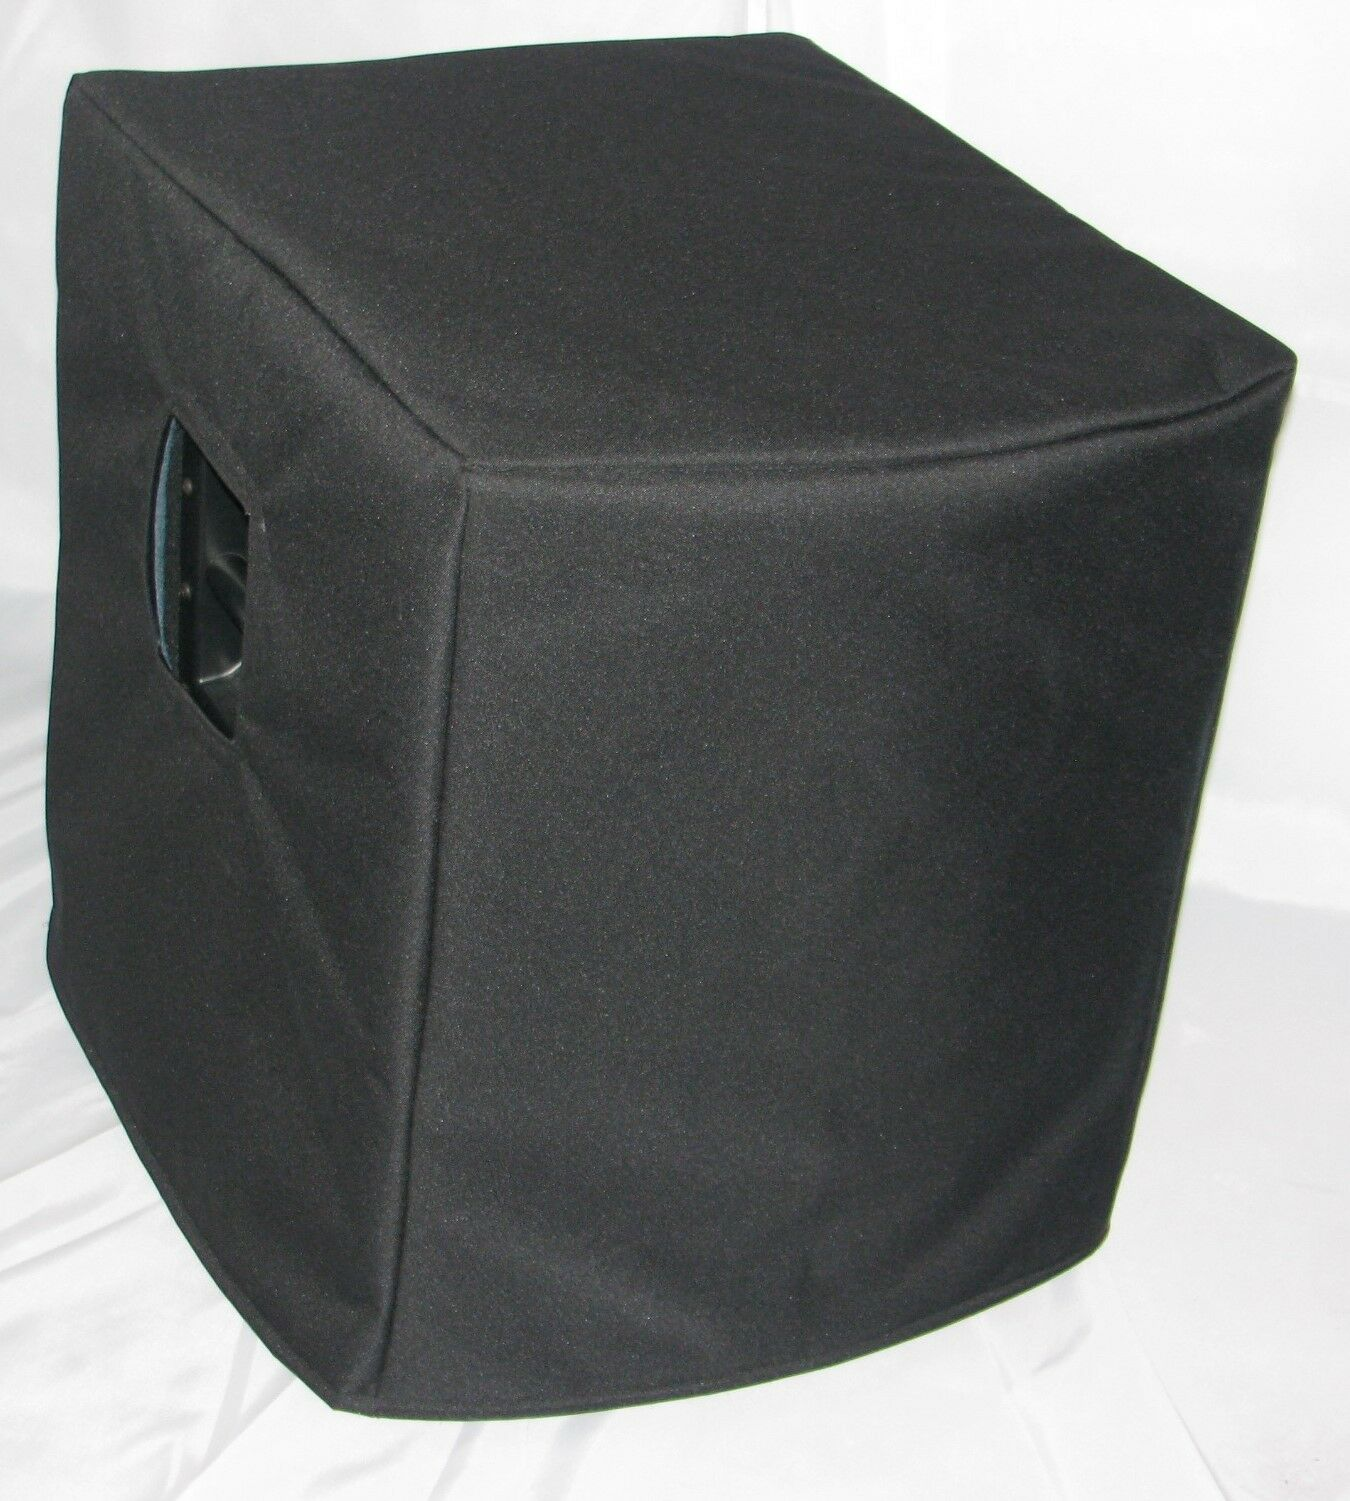 RCF 708 AS 2 Sub Padded Speaker Covers (PAIR)